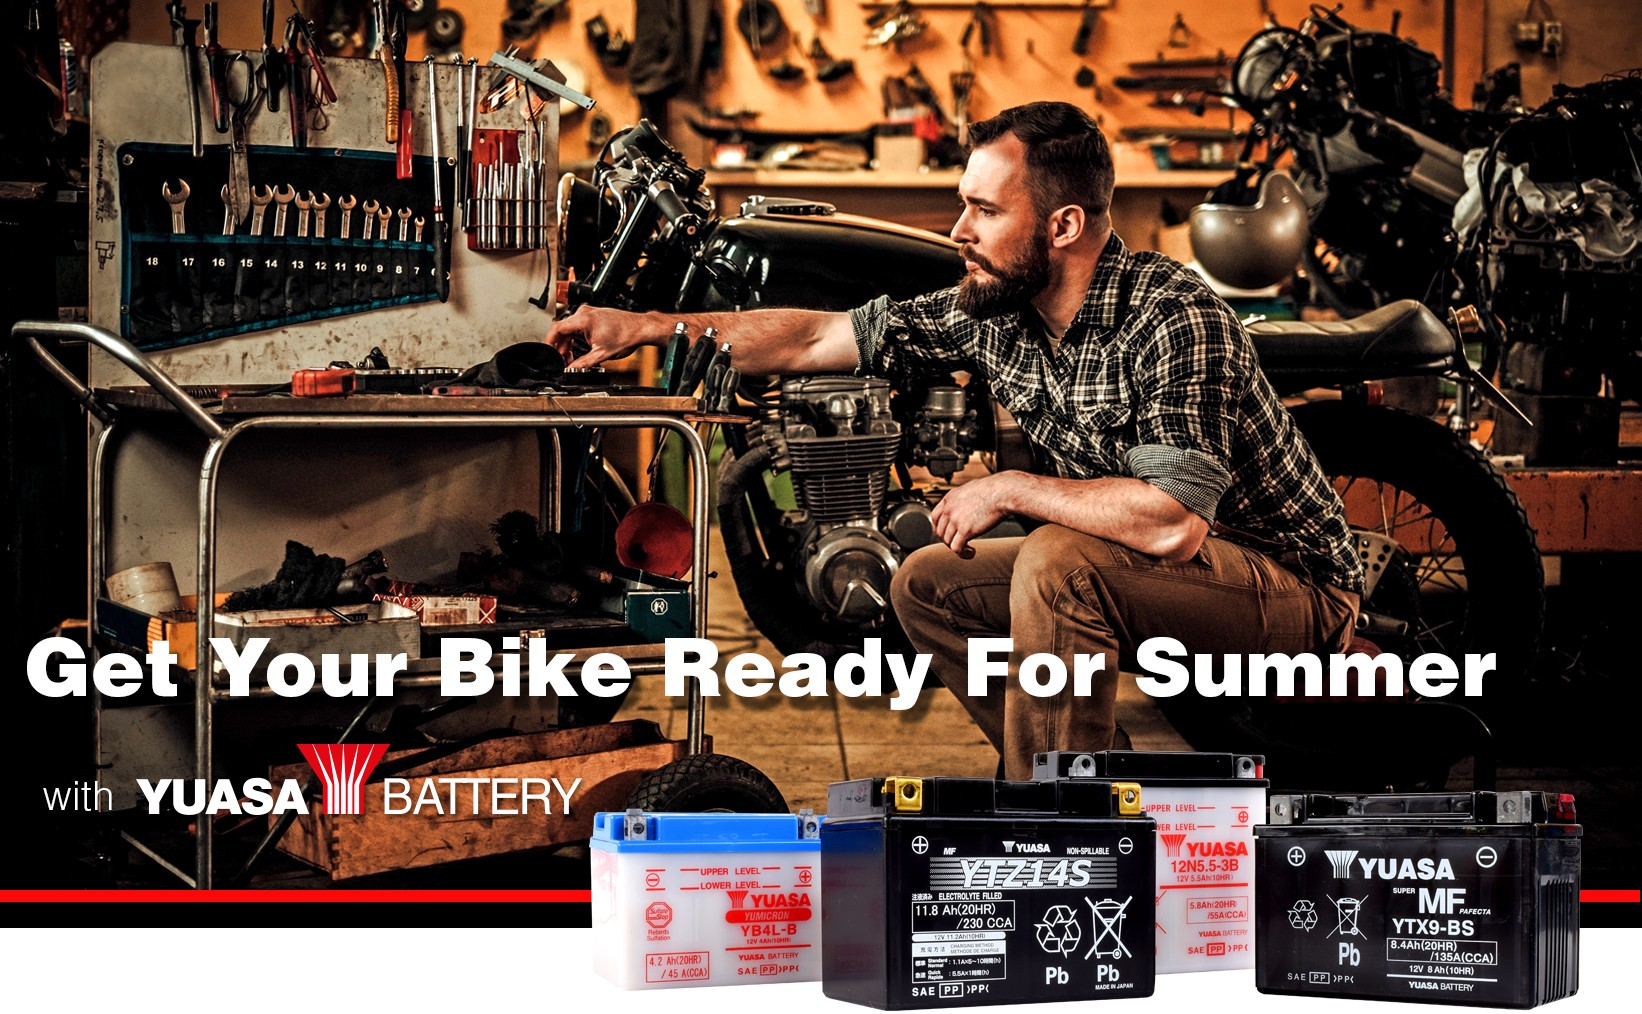 Get Your Bike Ready For Summer – Guide